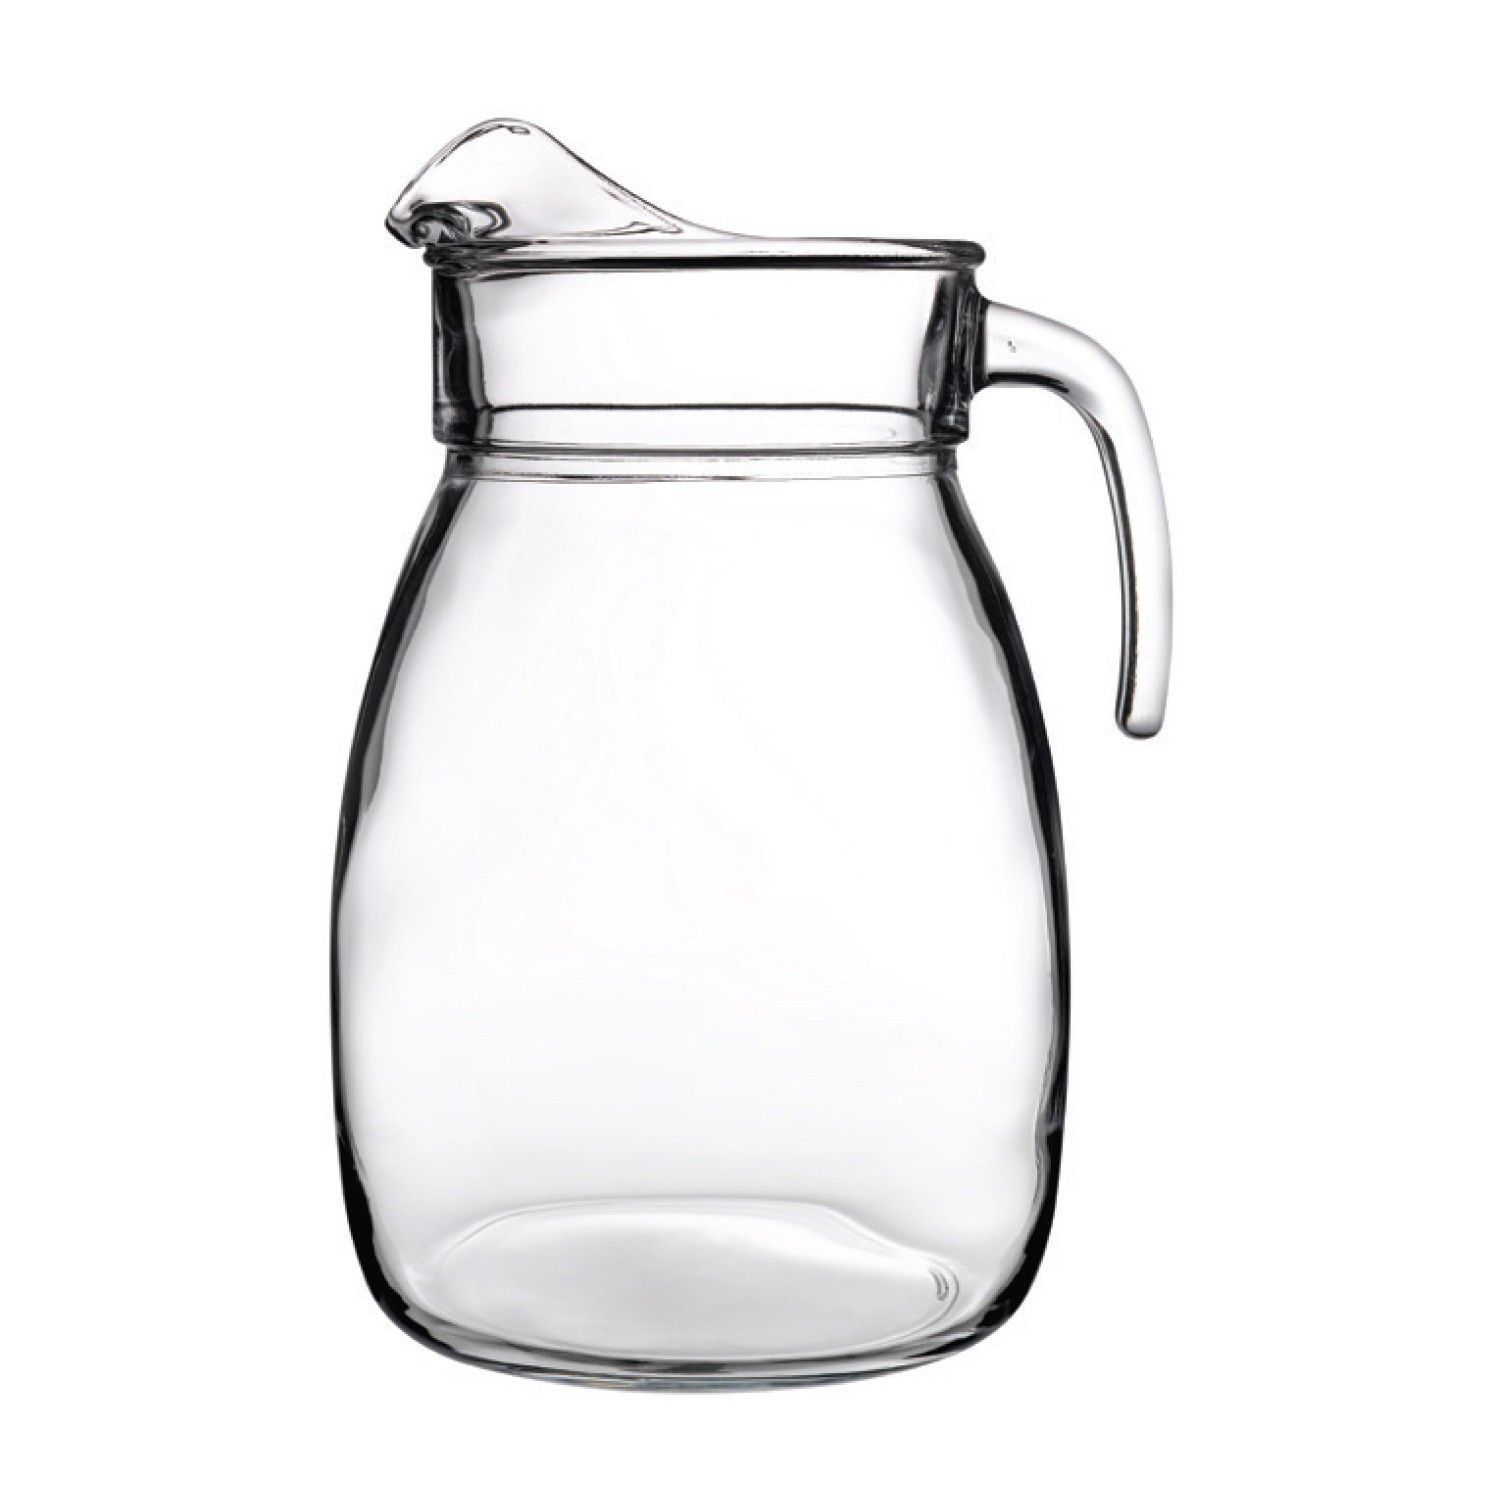 10.5H x 4B 83.25 oz Pitcher/Case of 6